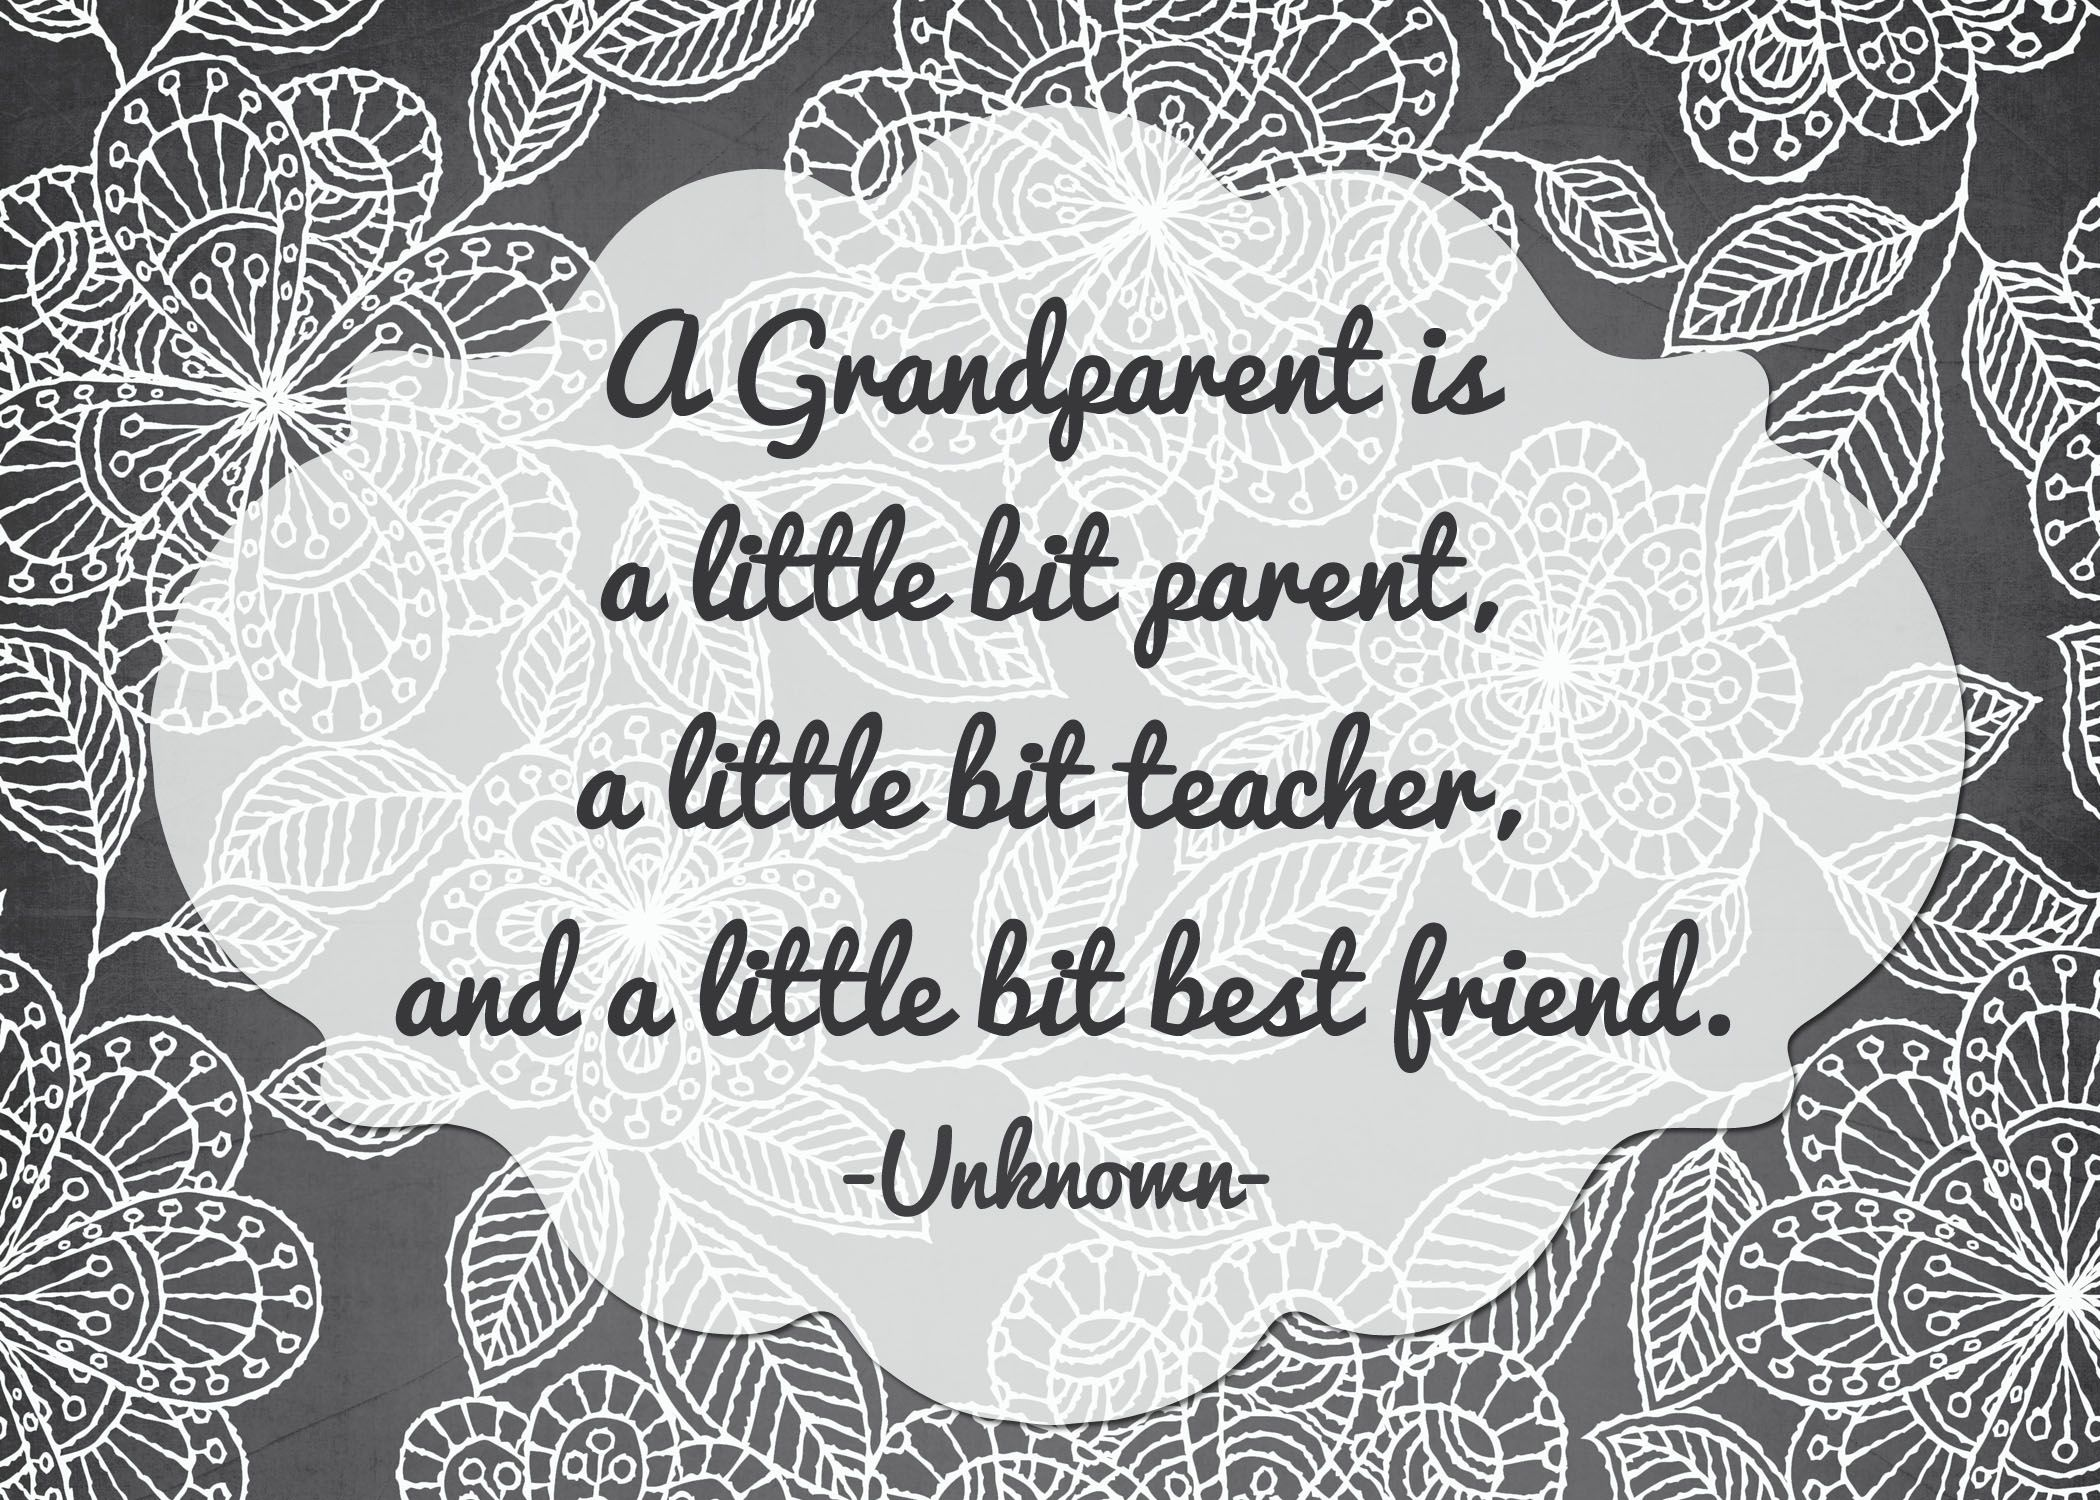 Grandparents Day Quotes Grandparents Prints | Our Best Crafts and DIY | Grandparents  Grandparents Day Quotes